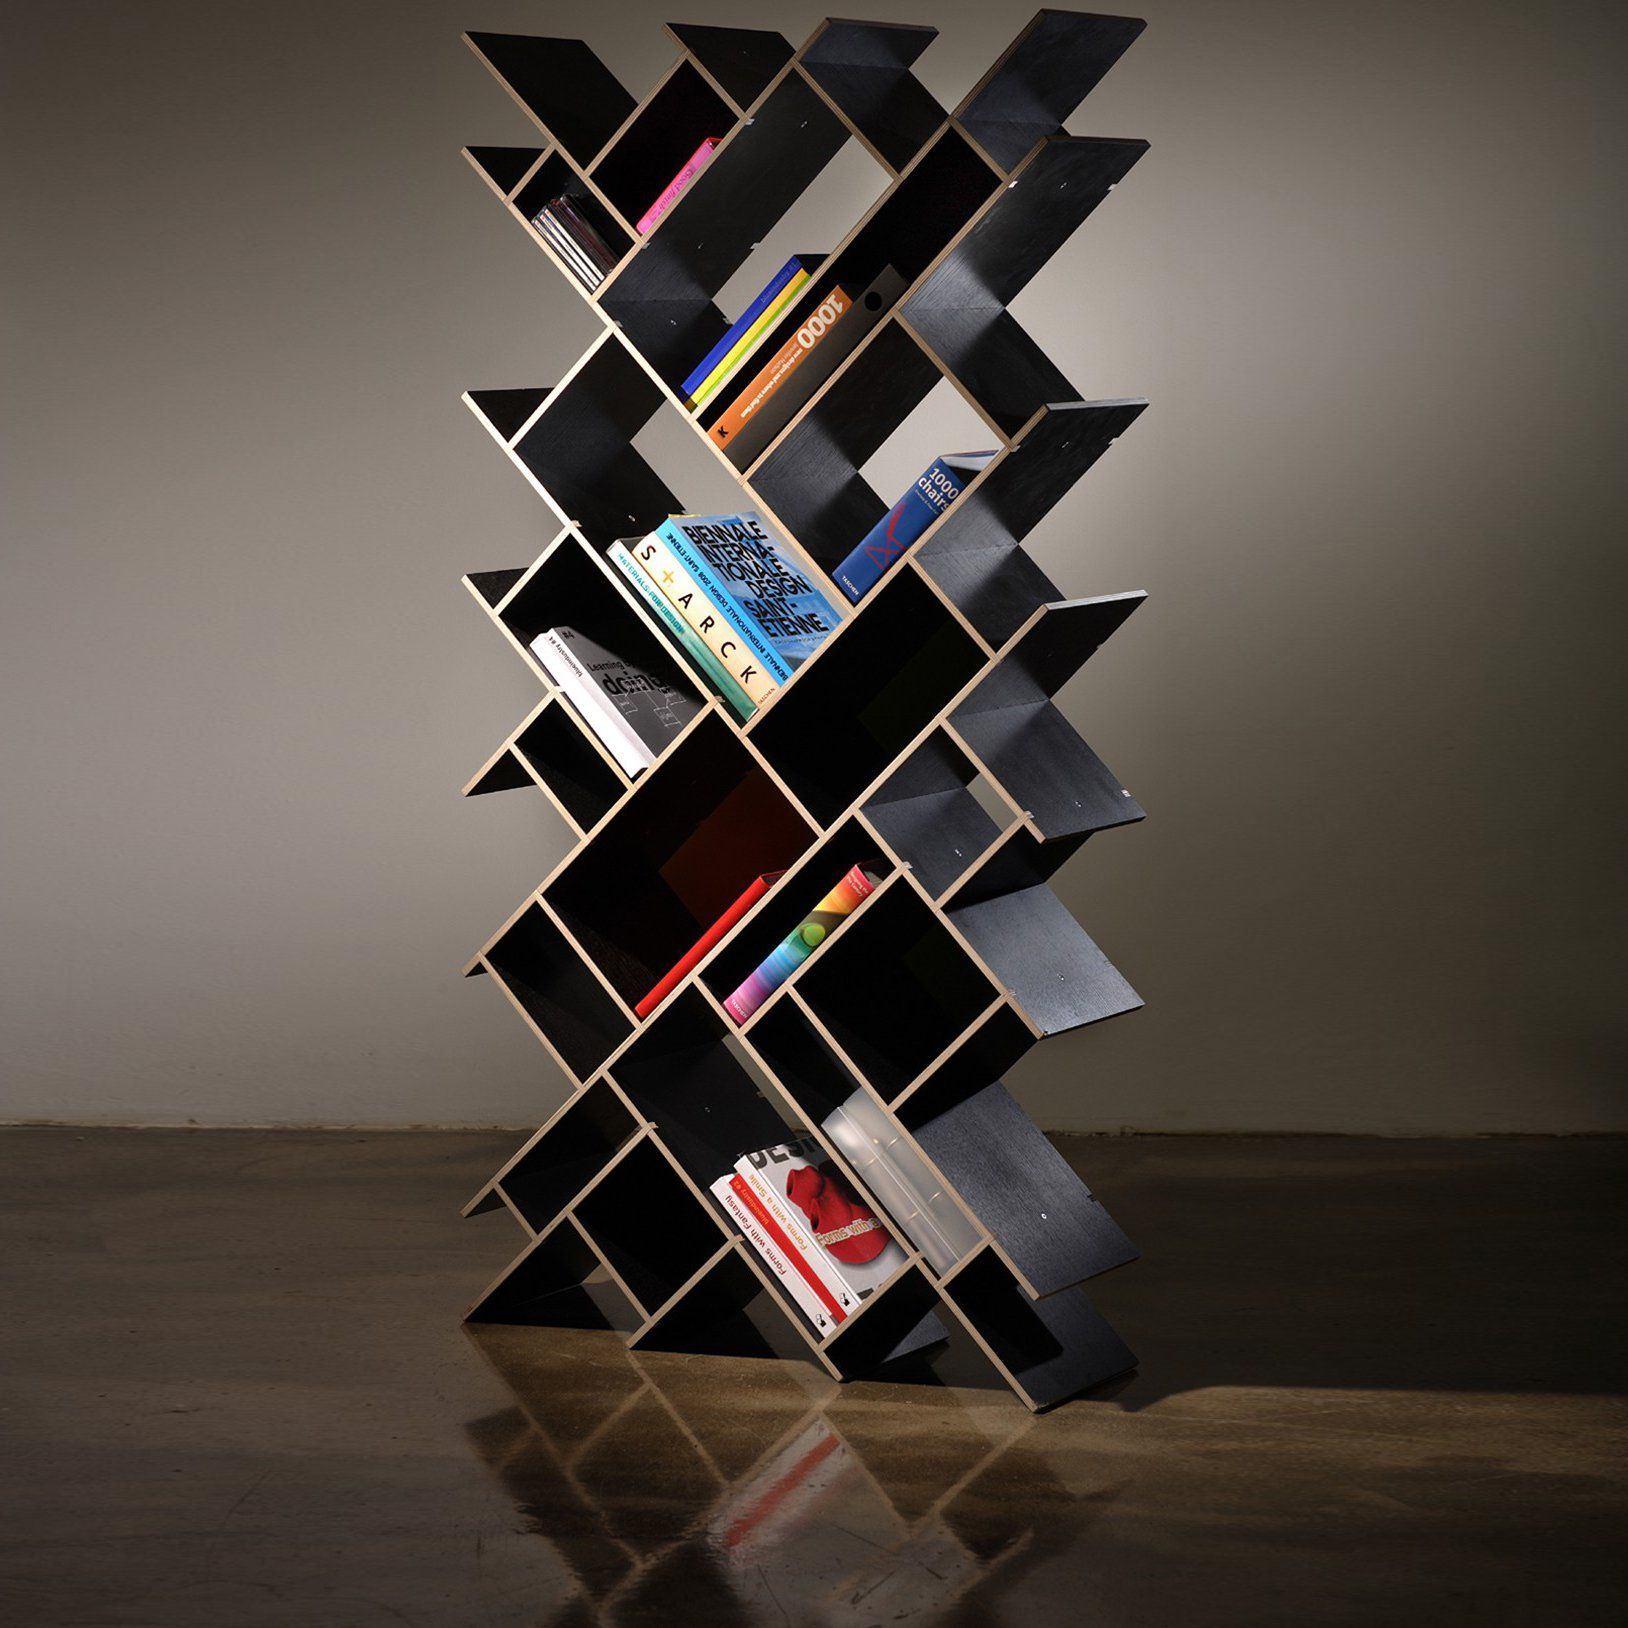 """Quad Oblong Bookcase is a multifunctional storage solution that boasts an elegant and modern design. Can be used singly or in multiples to provide excellent, efficient storage space. Shelves: Made of plywood finished in melamine (black or white) Back panels: Made of HDF plate. Measures 63"""" h x 31.5"""" w x 10"""" d. Please allow 6-8 weeks for shipping."""